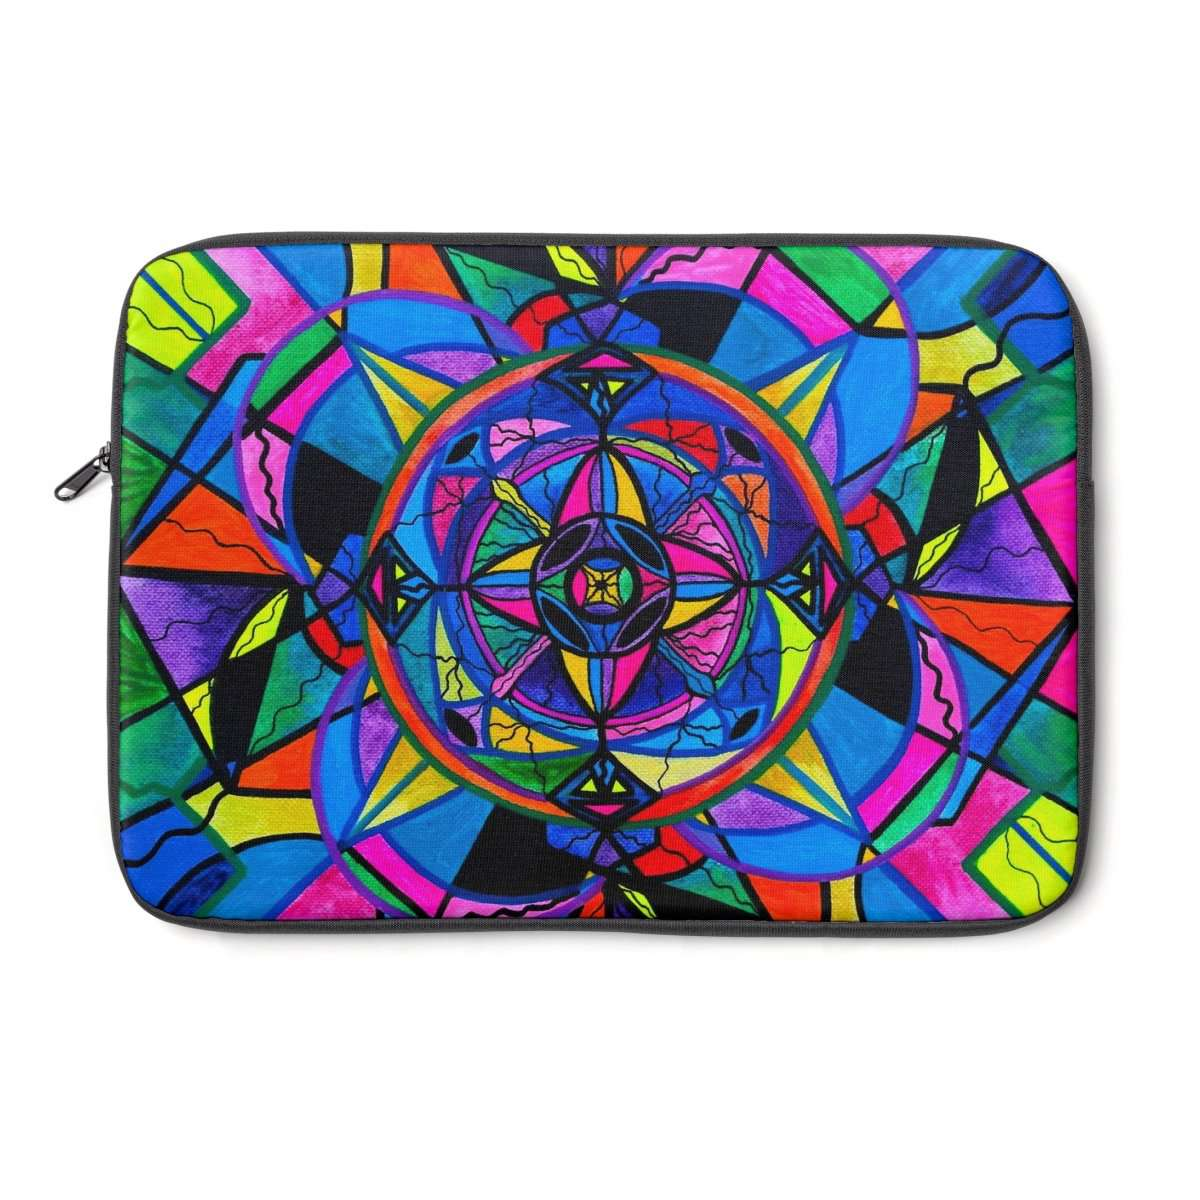 Activating Potential - Laptop Sleeve